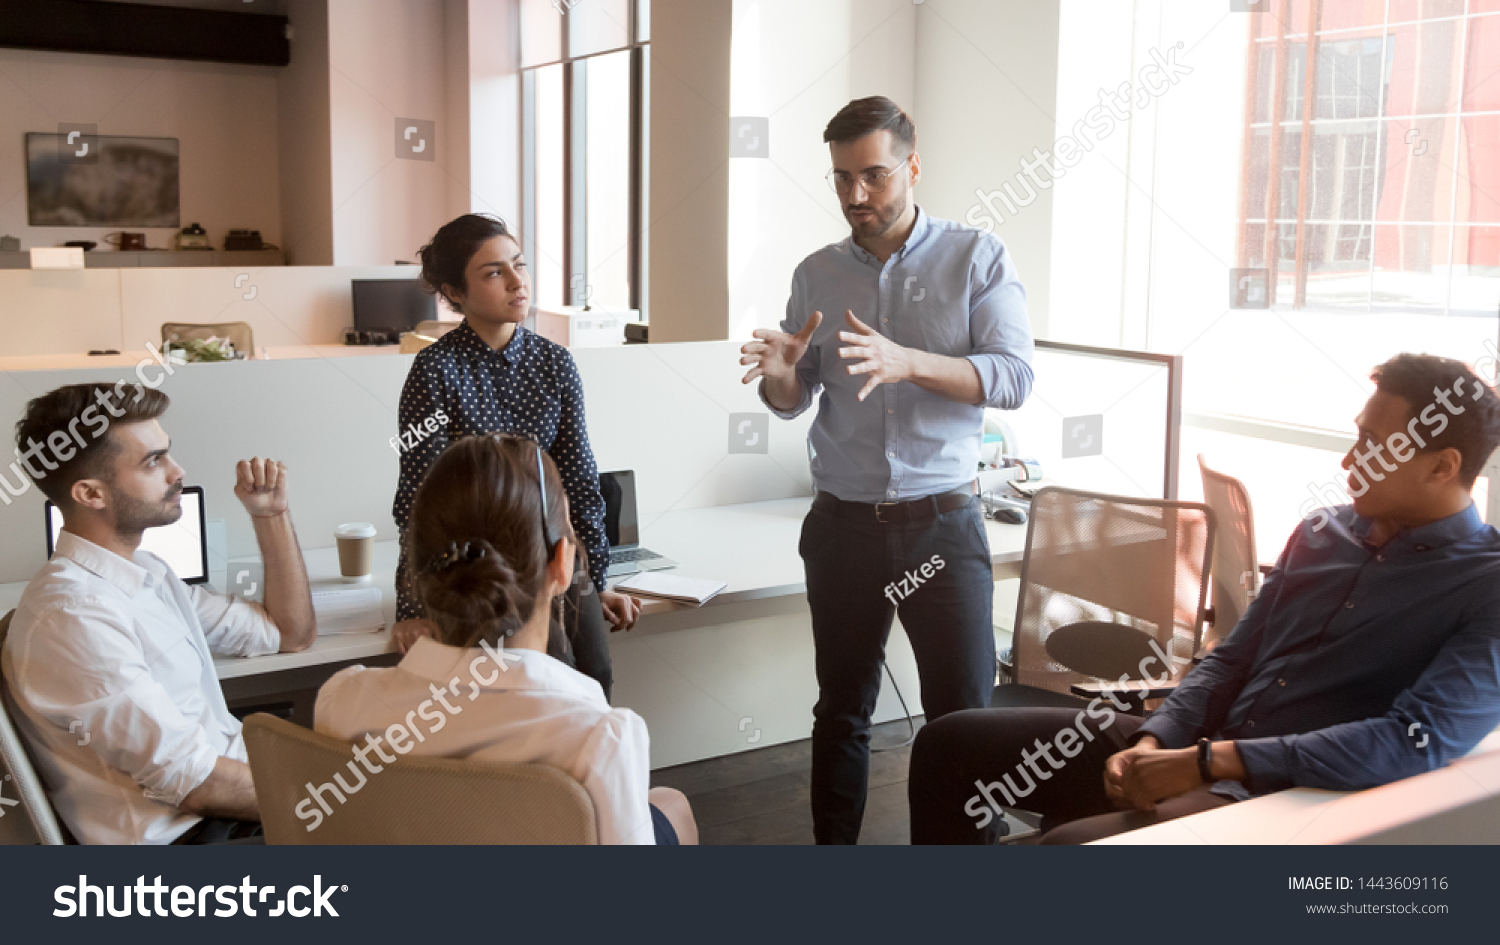 Serious business man team leader coach mentor talk to diverse business people in office explain strategy at corporate group meeting, multiethnic staff listen to boss instruct interns at briefing #1443609116